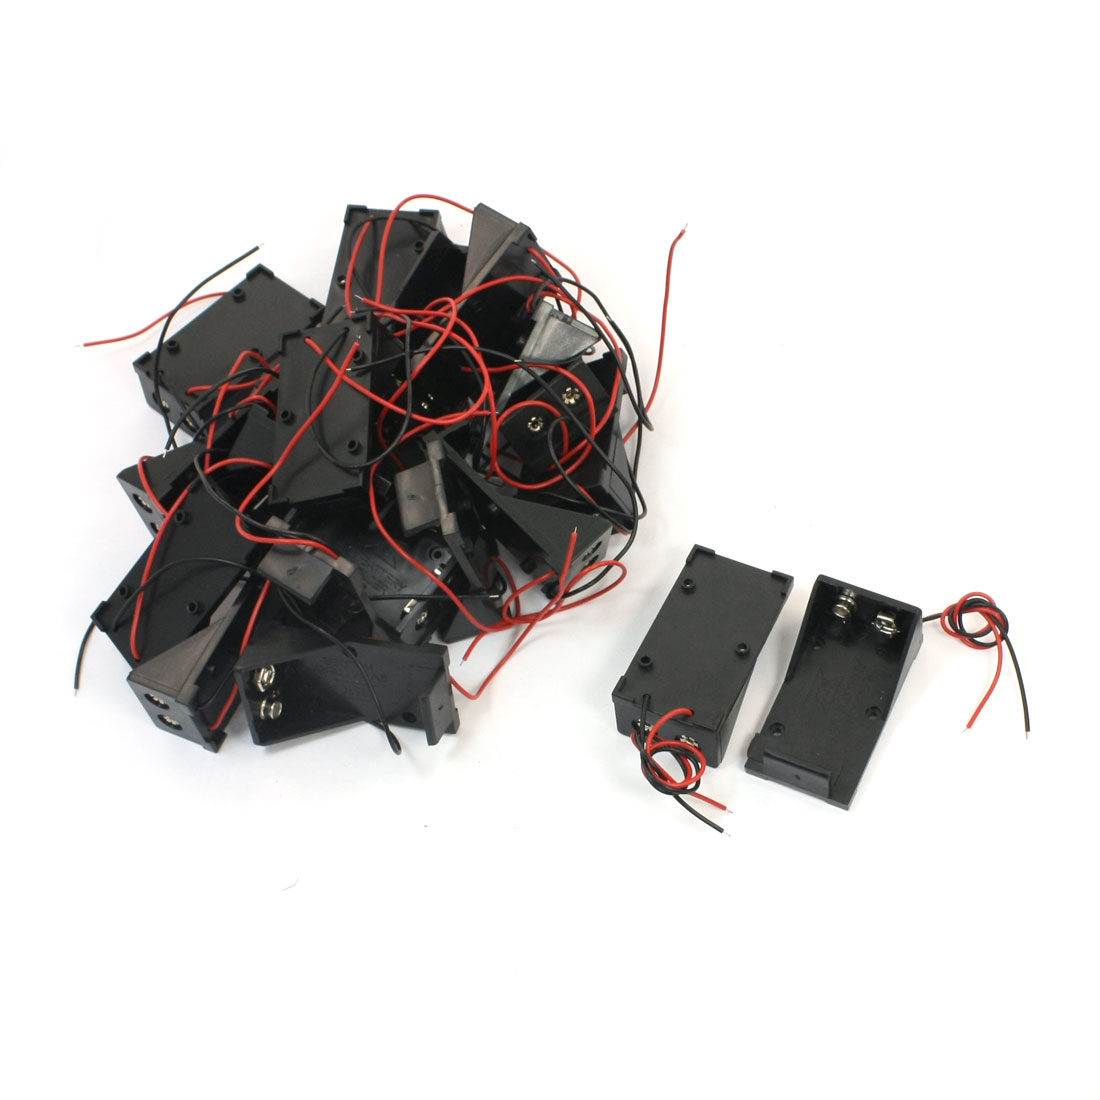 20 Pcs Two Wire Leads Open Frame Plastic Shell 9V Battery Holders Cases Cell Storage Boxes Containers